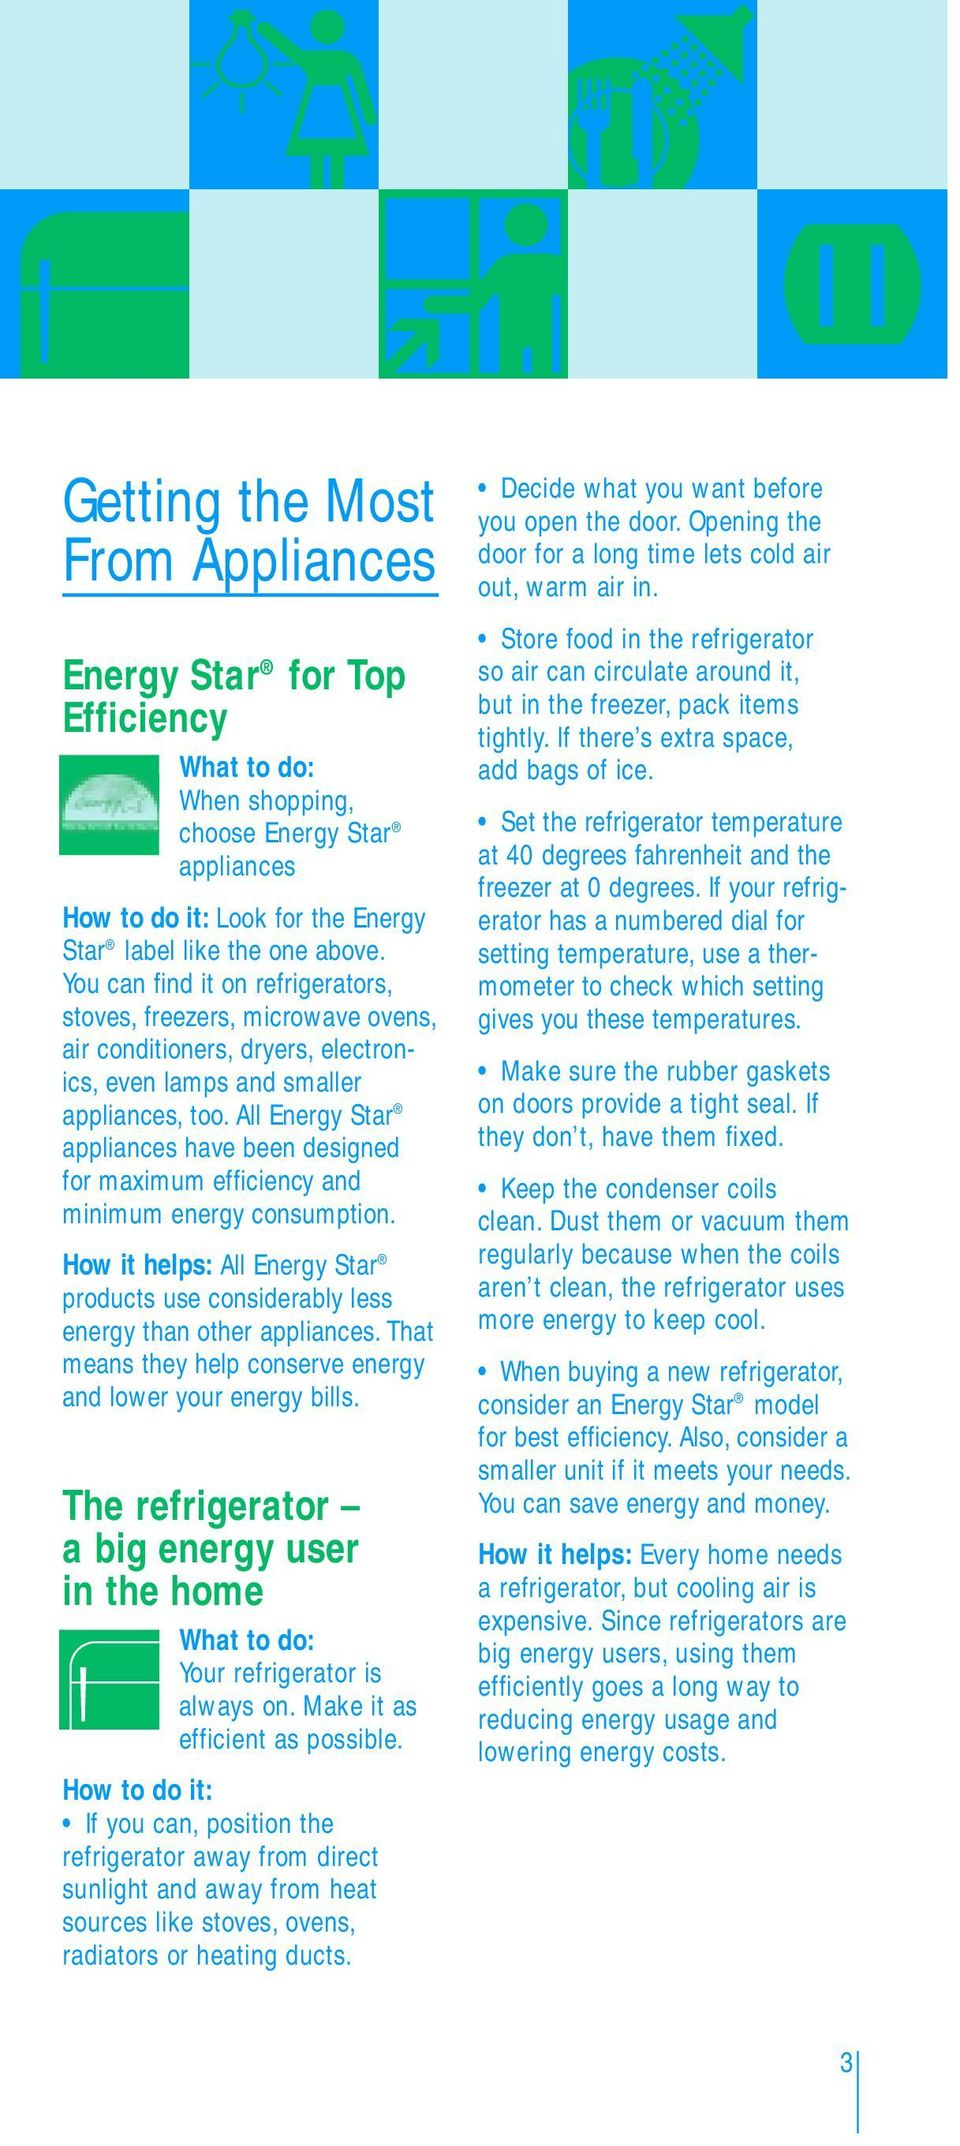 All Energy Star appliances have been designed for maximum efficiency and minimum energy consumption. How it helps: All Energy Star products use considerably less energy than other appliances.